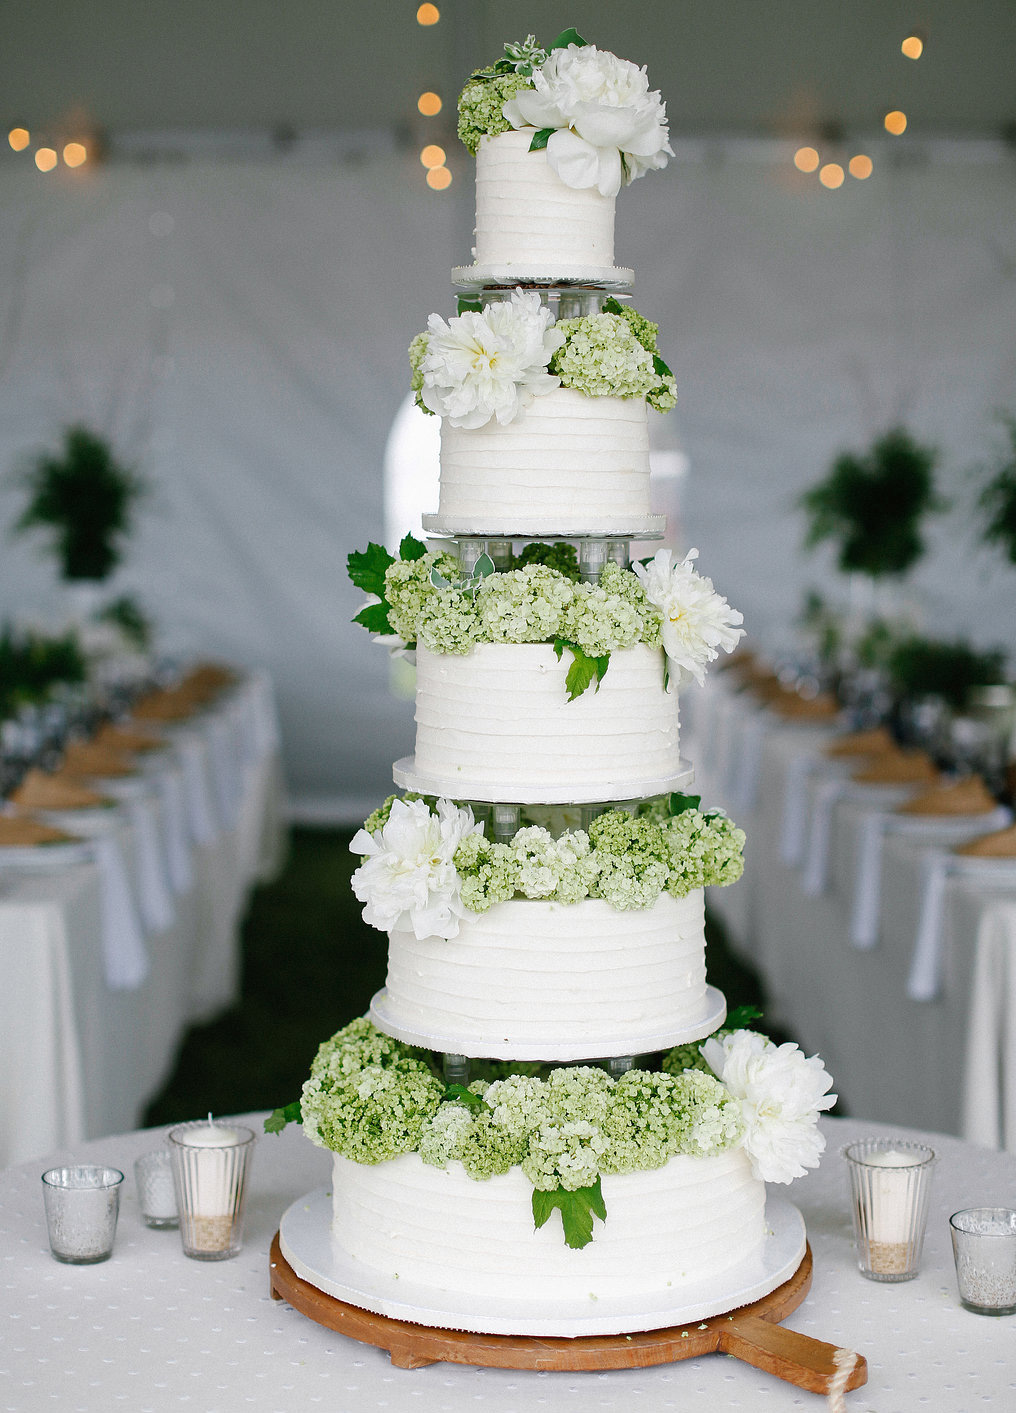 Tall wedding cake with white and green hydrangea tiers